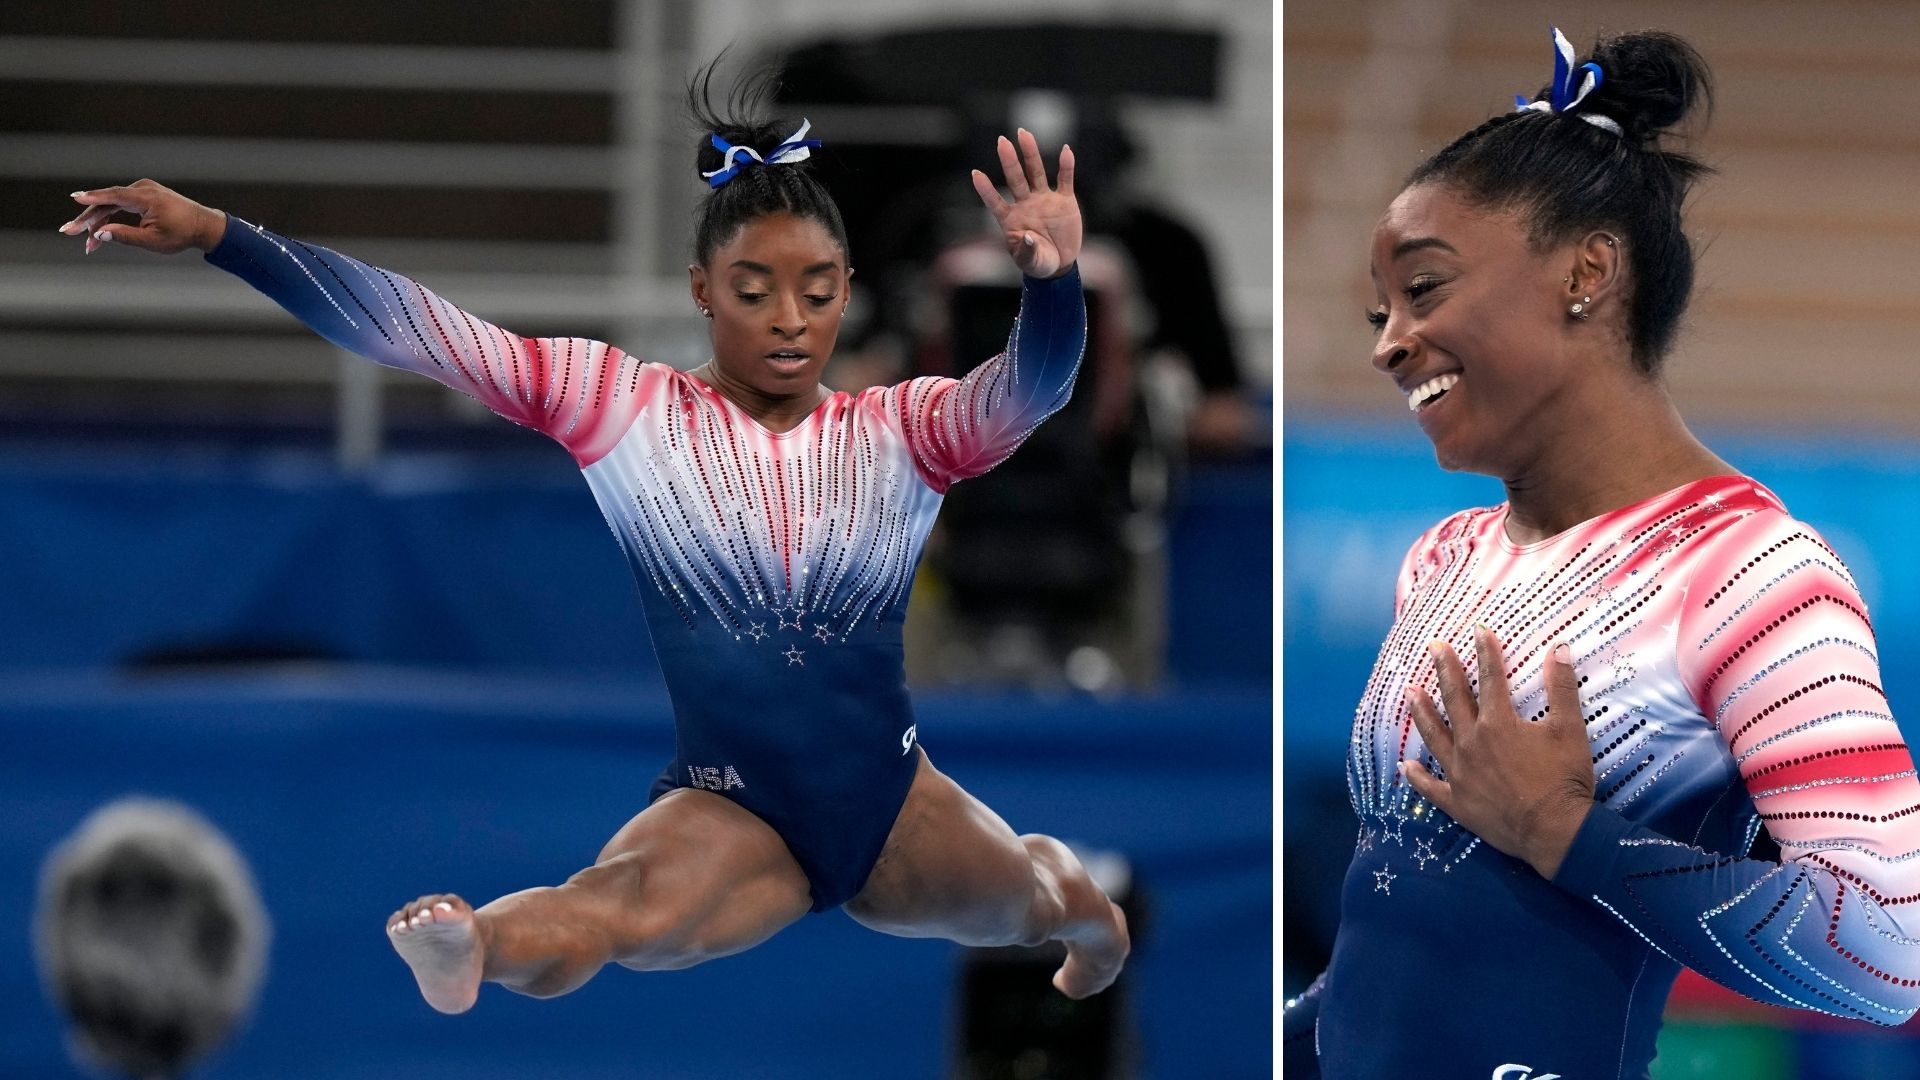 Simone Biles performs at the 2020 Summer Olympics